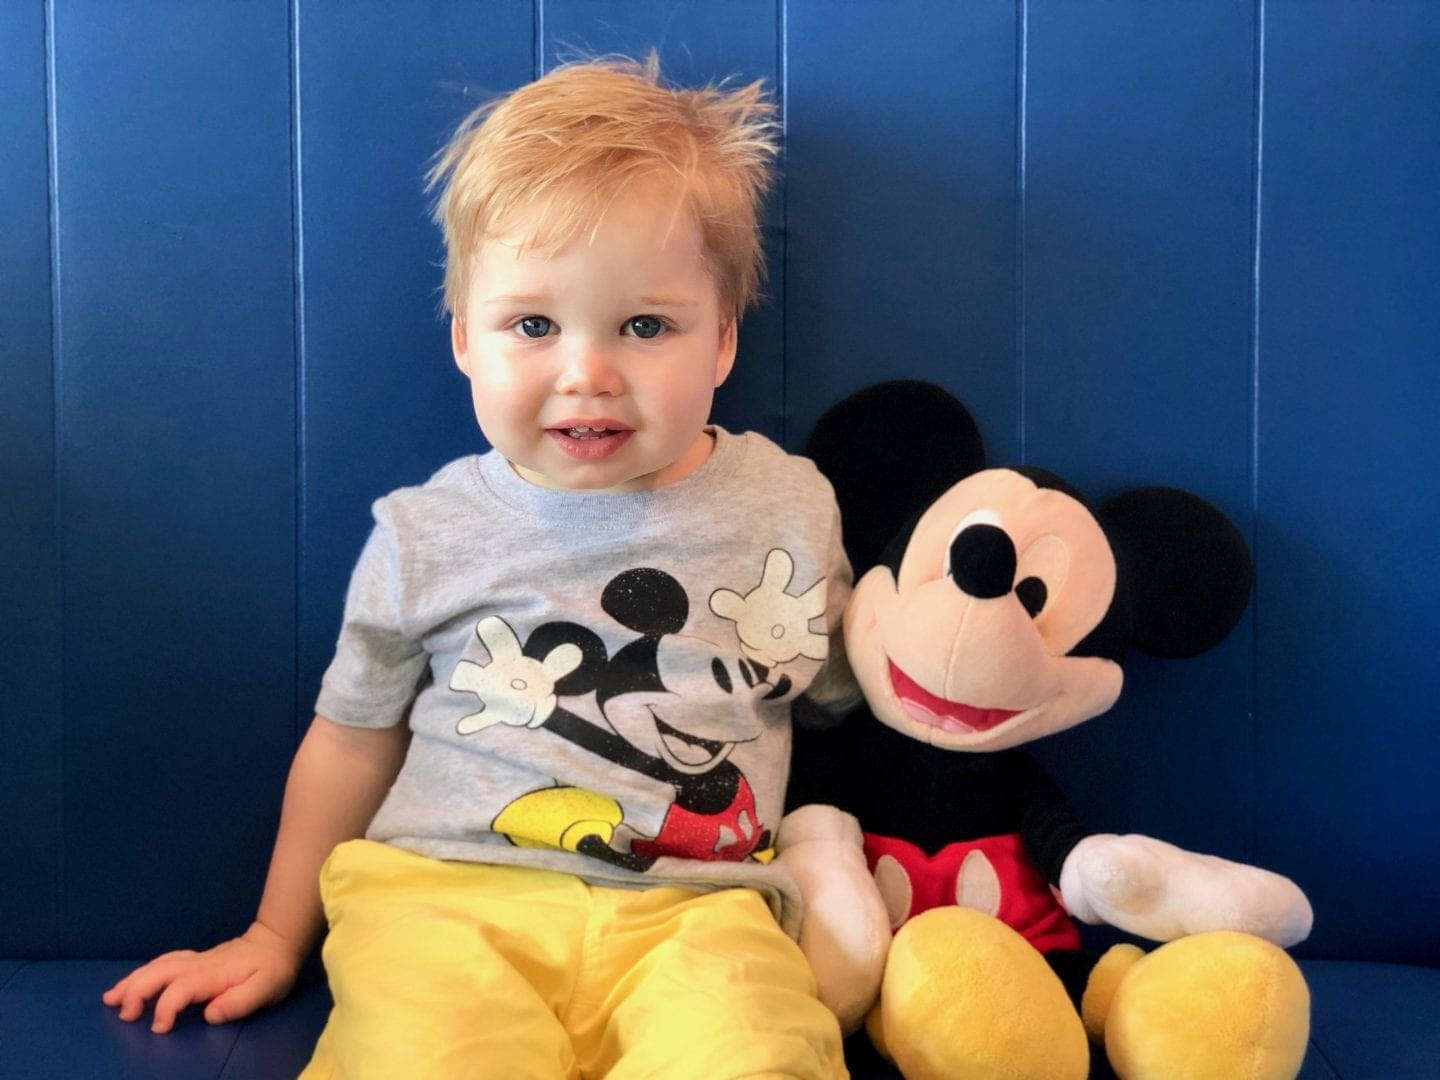 people mover in Tomorrowland at wdw magic kingdom toddler boy